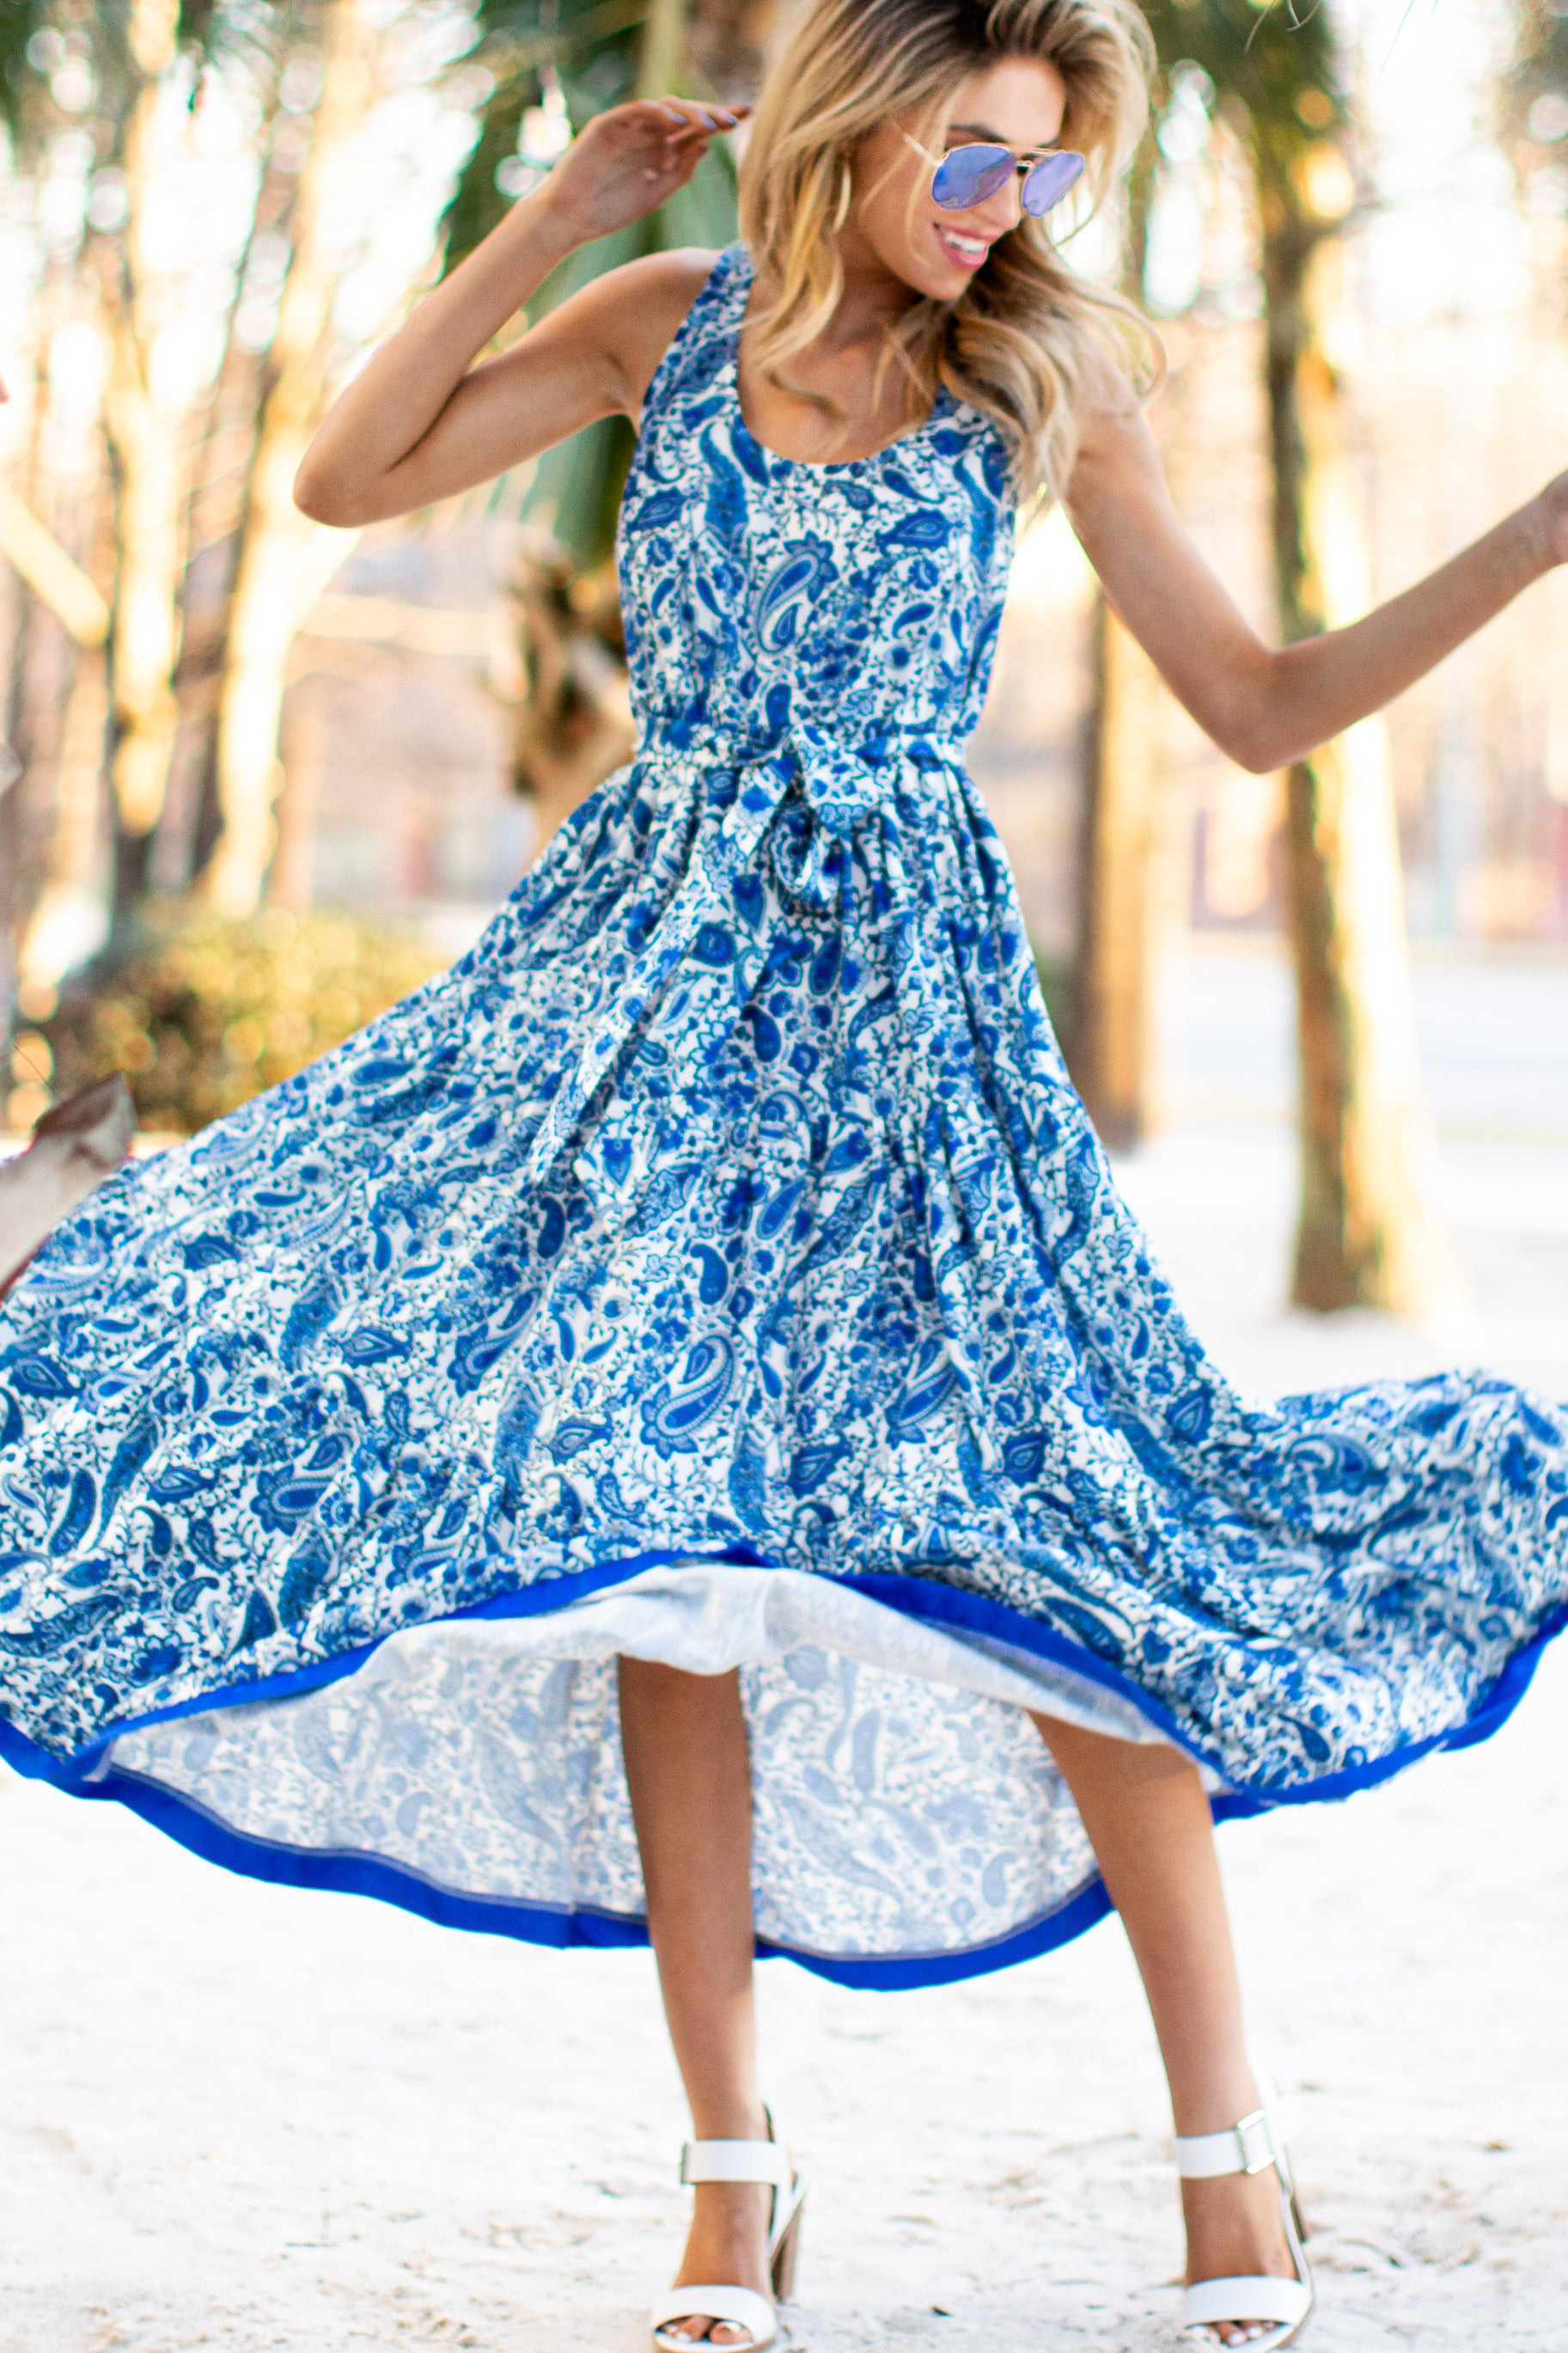 Noticing You Blue Multi Print Maxi Dress